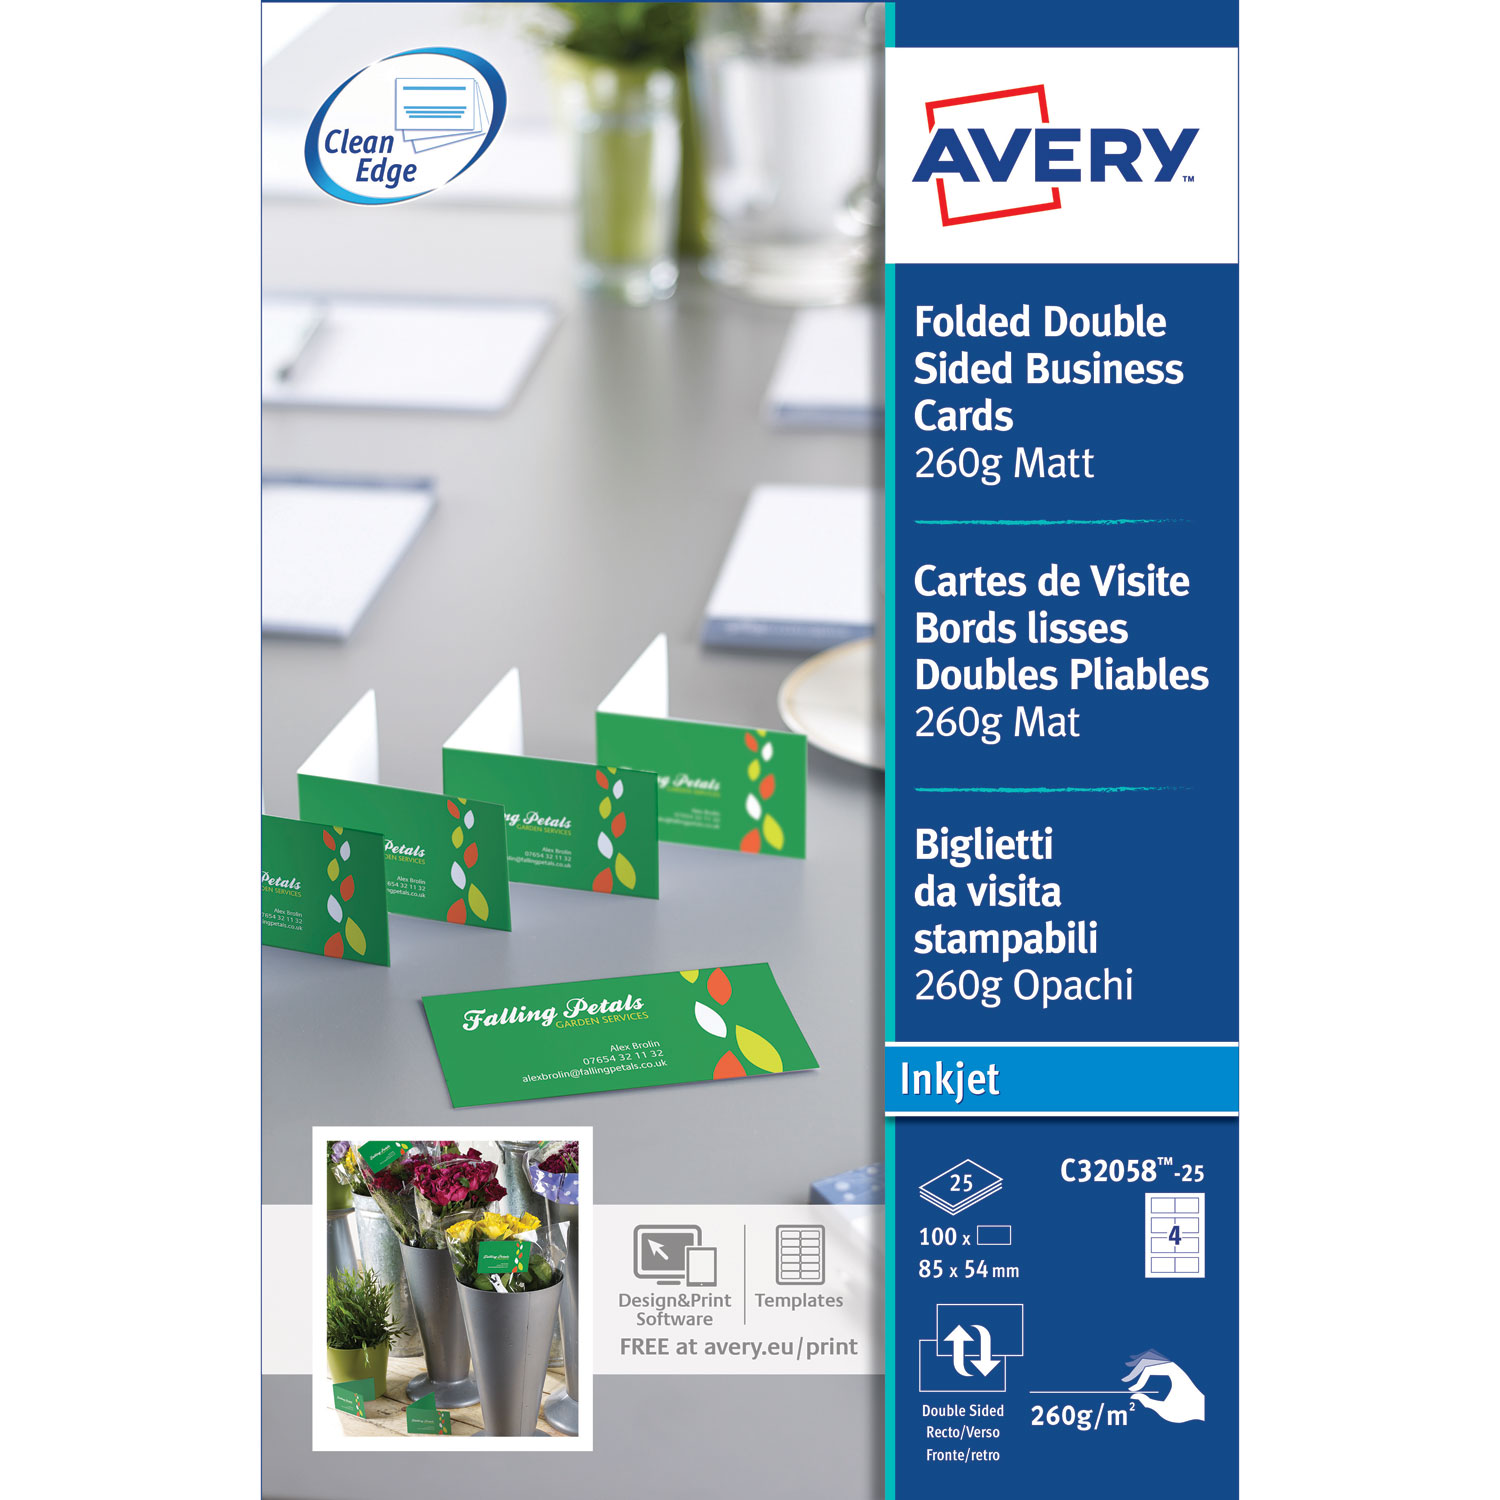 Avery QuickClean 100 Cartes De Visite 85 X 54 Mm C32058 25